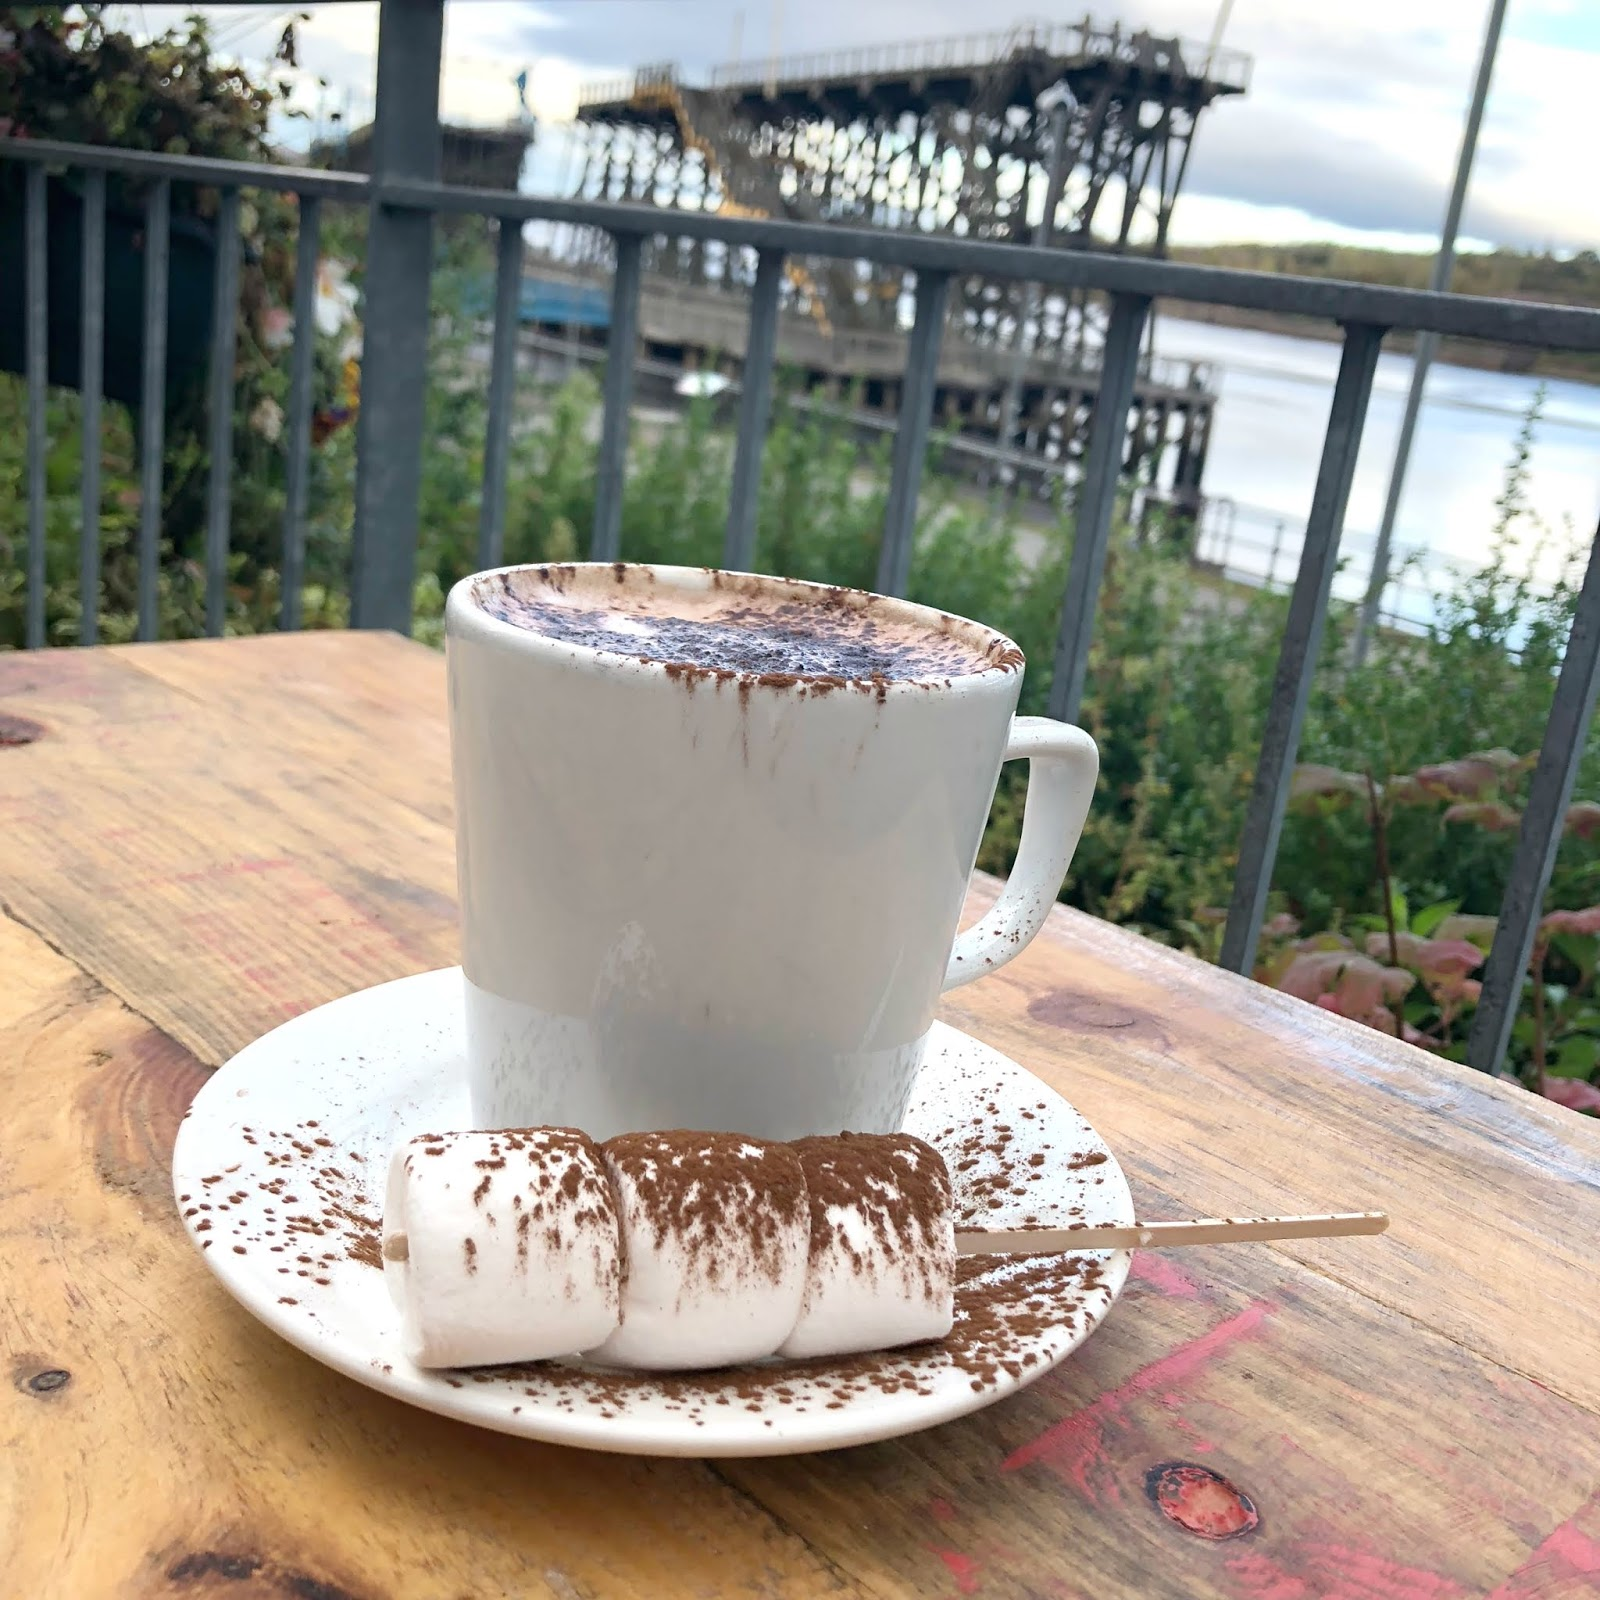 Best Hot Chocolate North East - Staithes Cafe